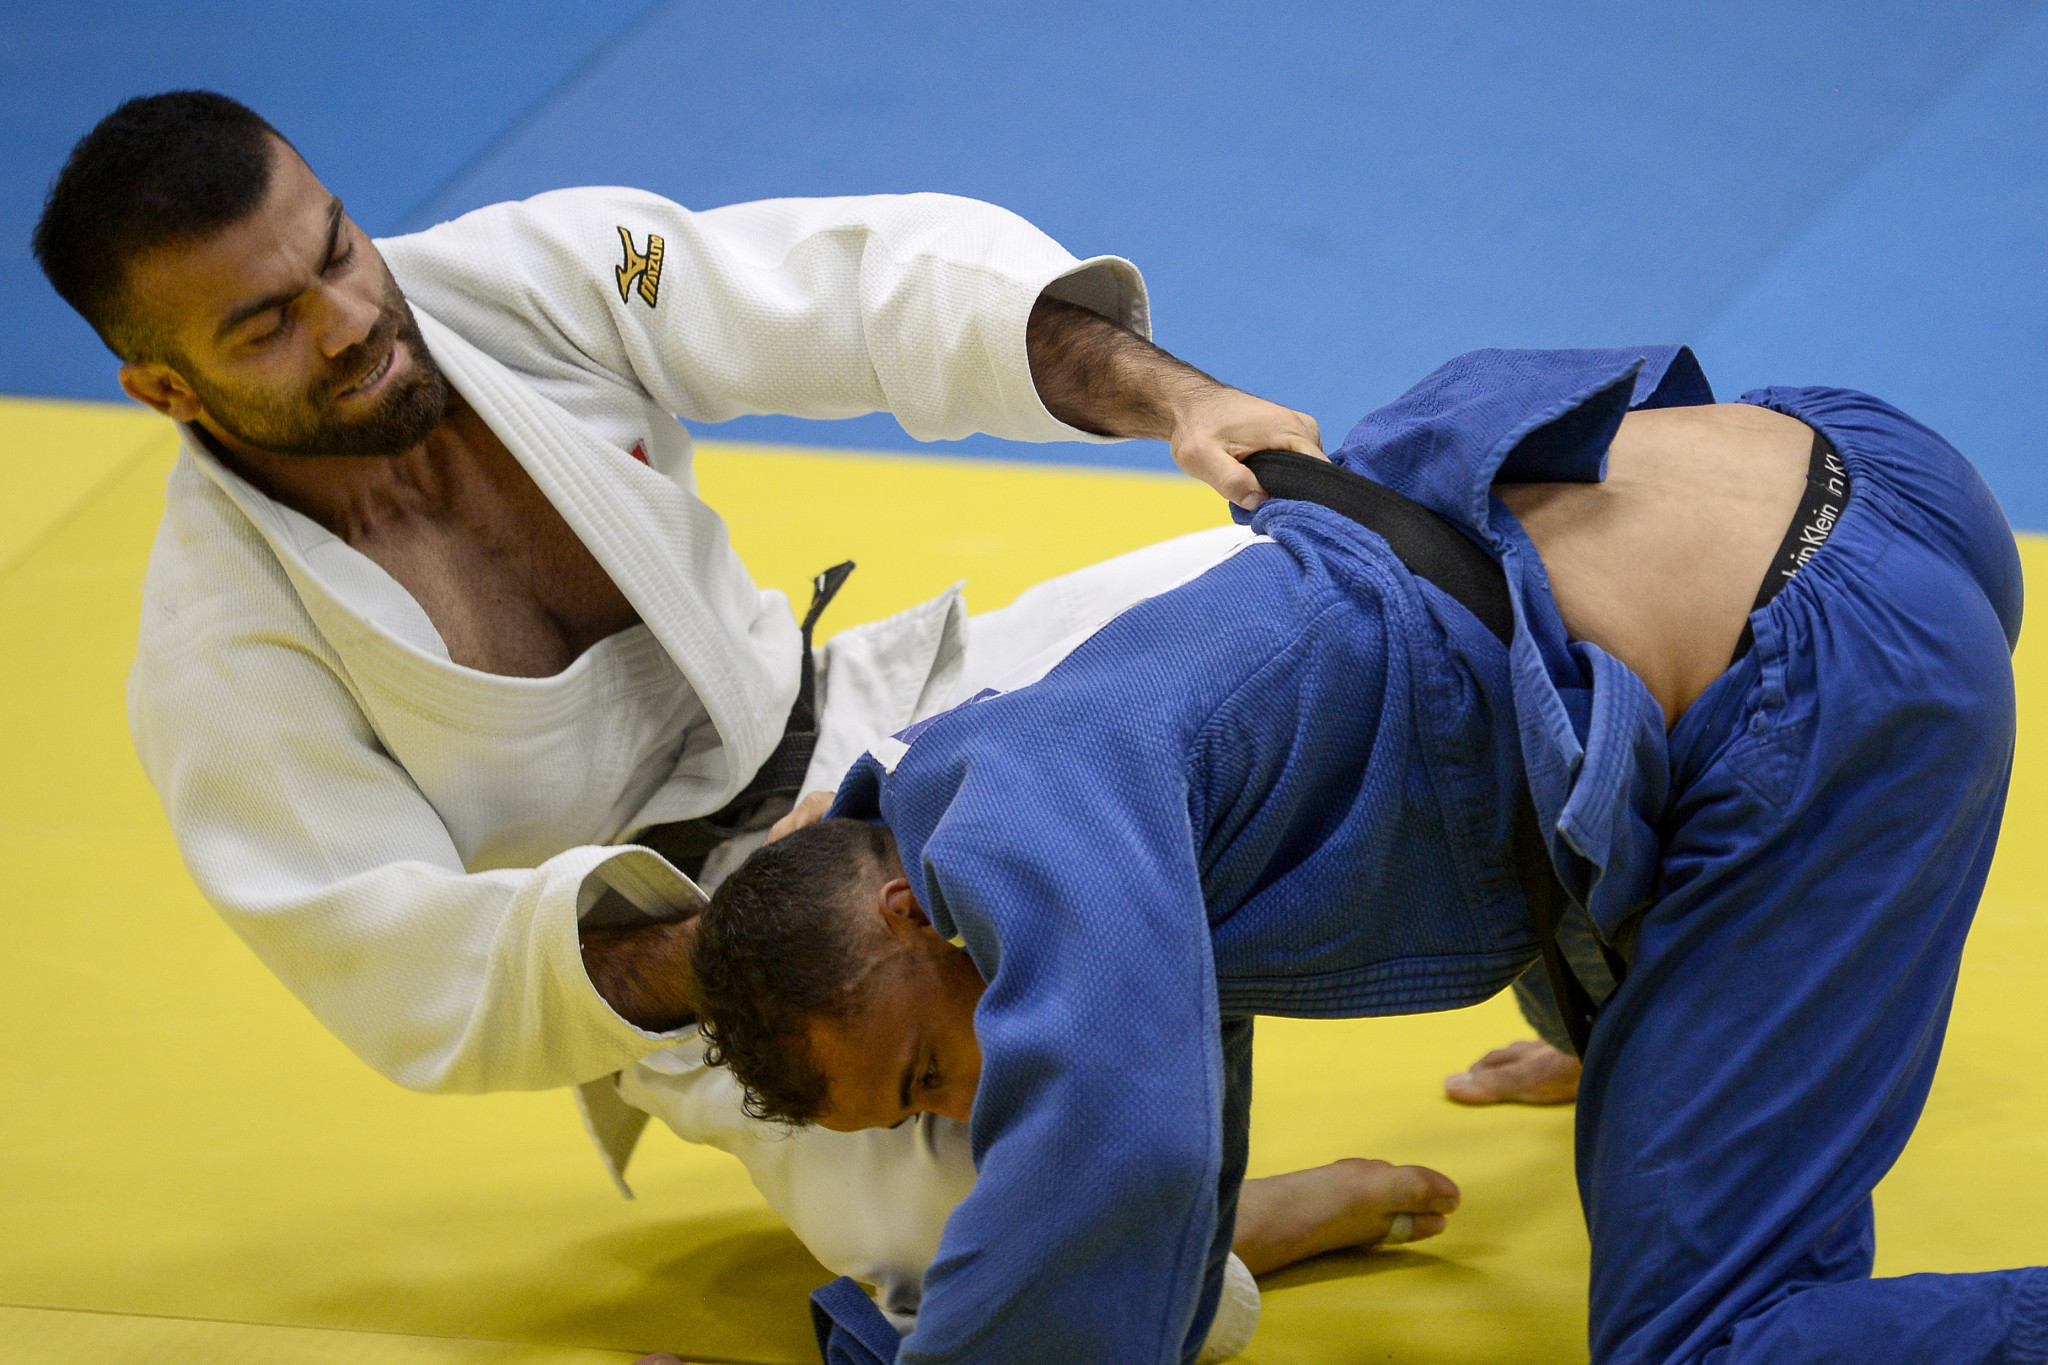 Darwish among judo winners at Mediterranean Games as medals come thick and fast at Tarragona 2018